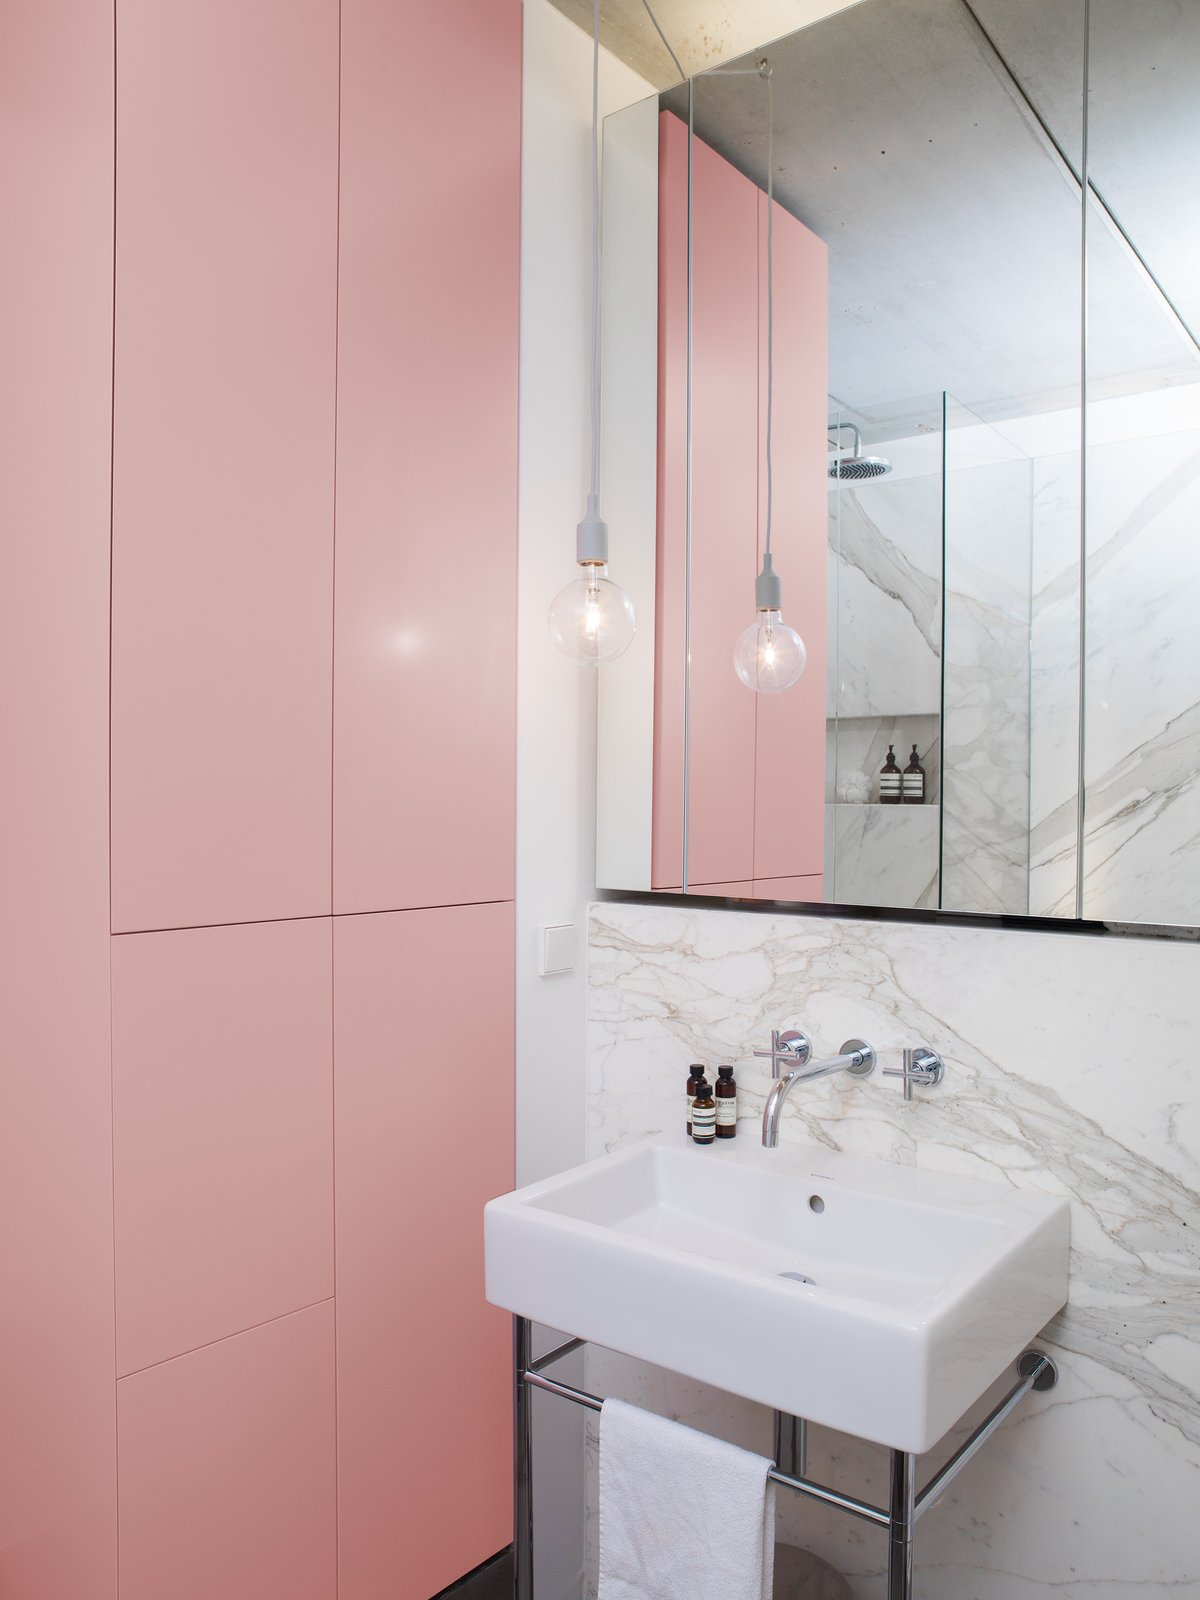 Statuario marble appears again in the bathroom, where it contrasts pink cabinets that create ample room for storage. Tagged: Bath Room, Stone Slab Wall, Pendant Lighting, and Pedestal Sink. Best Photos